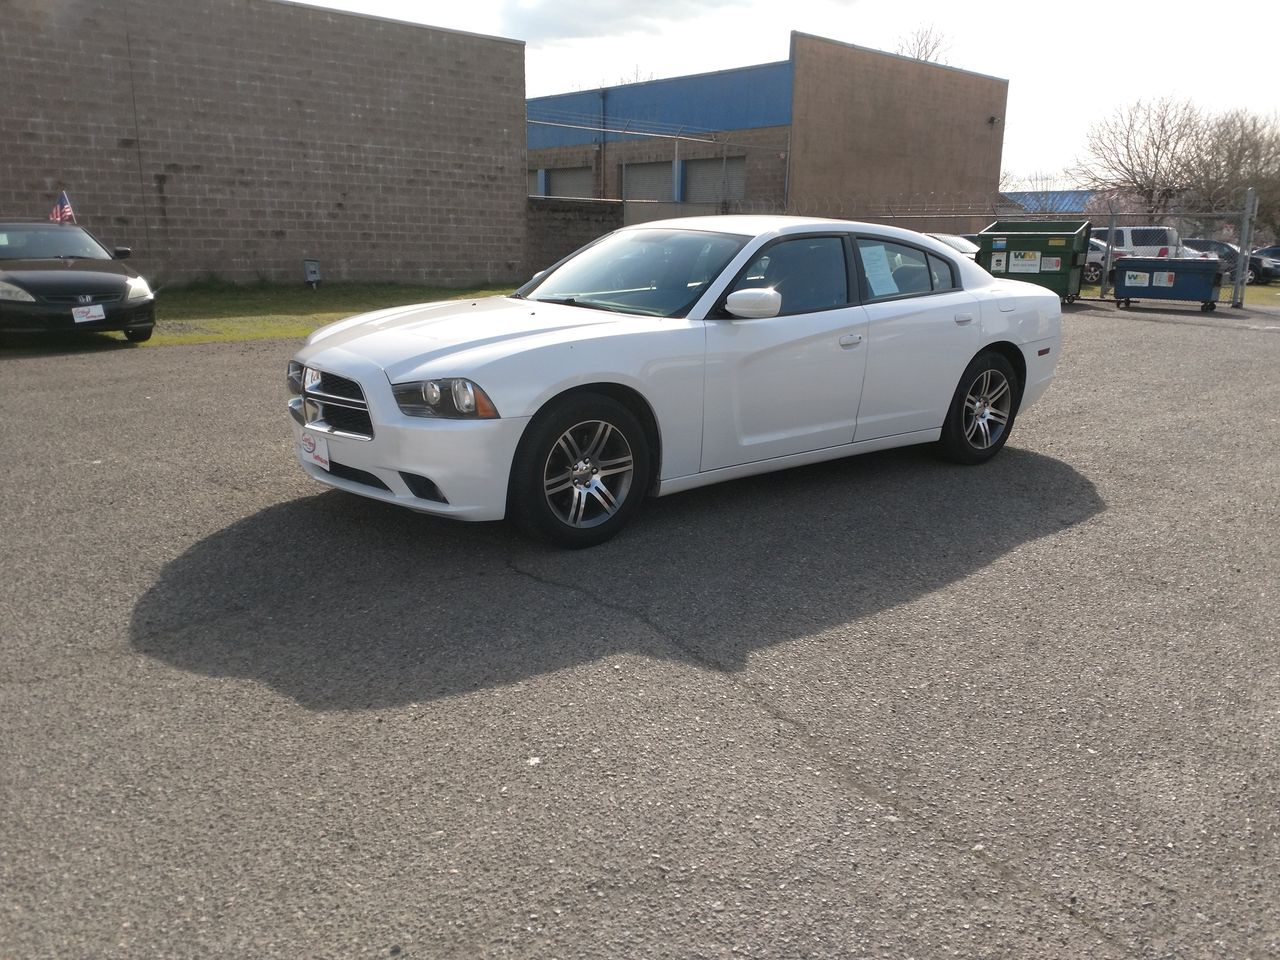 Pre-Owned 2012 DODGE CHARGER POLICE